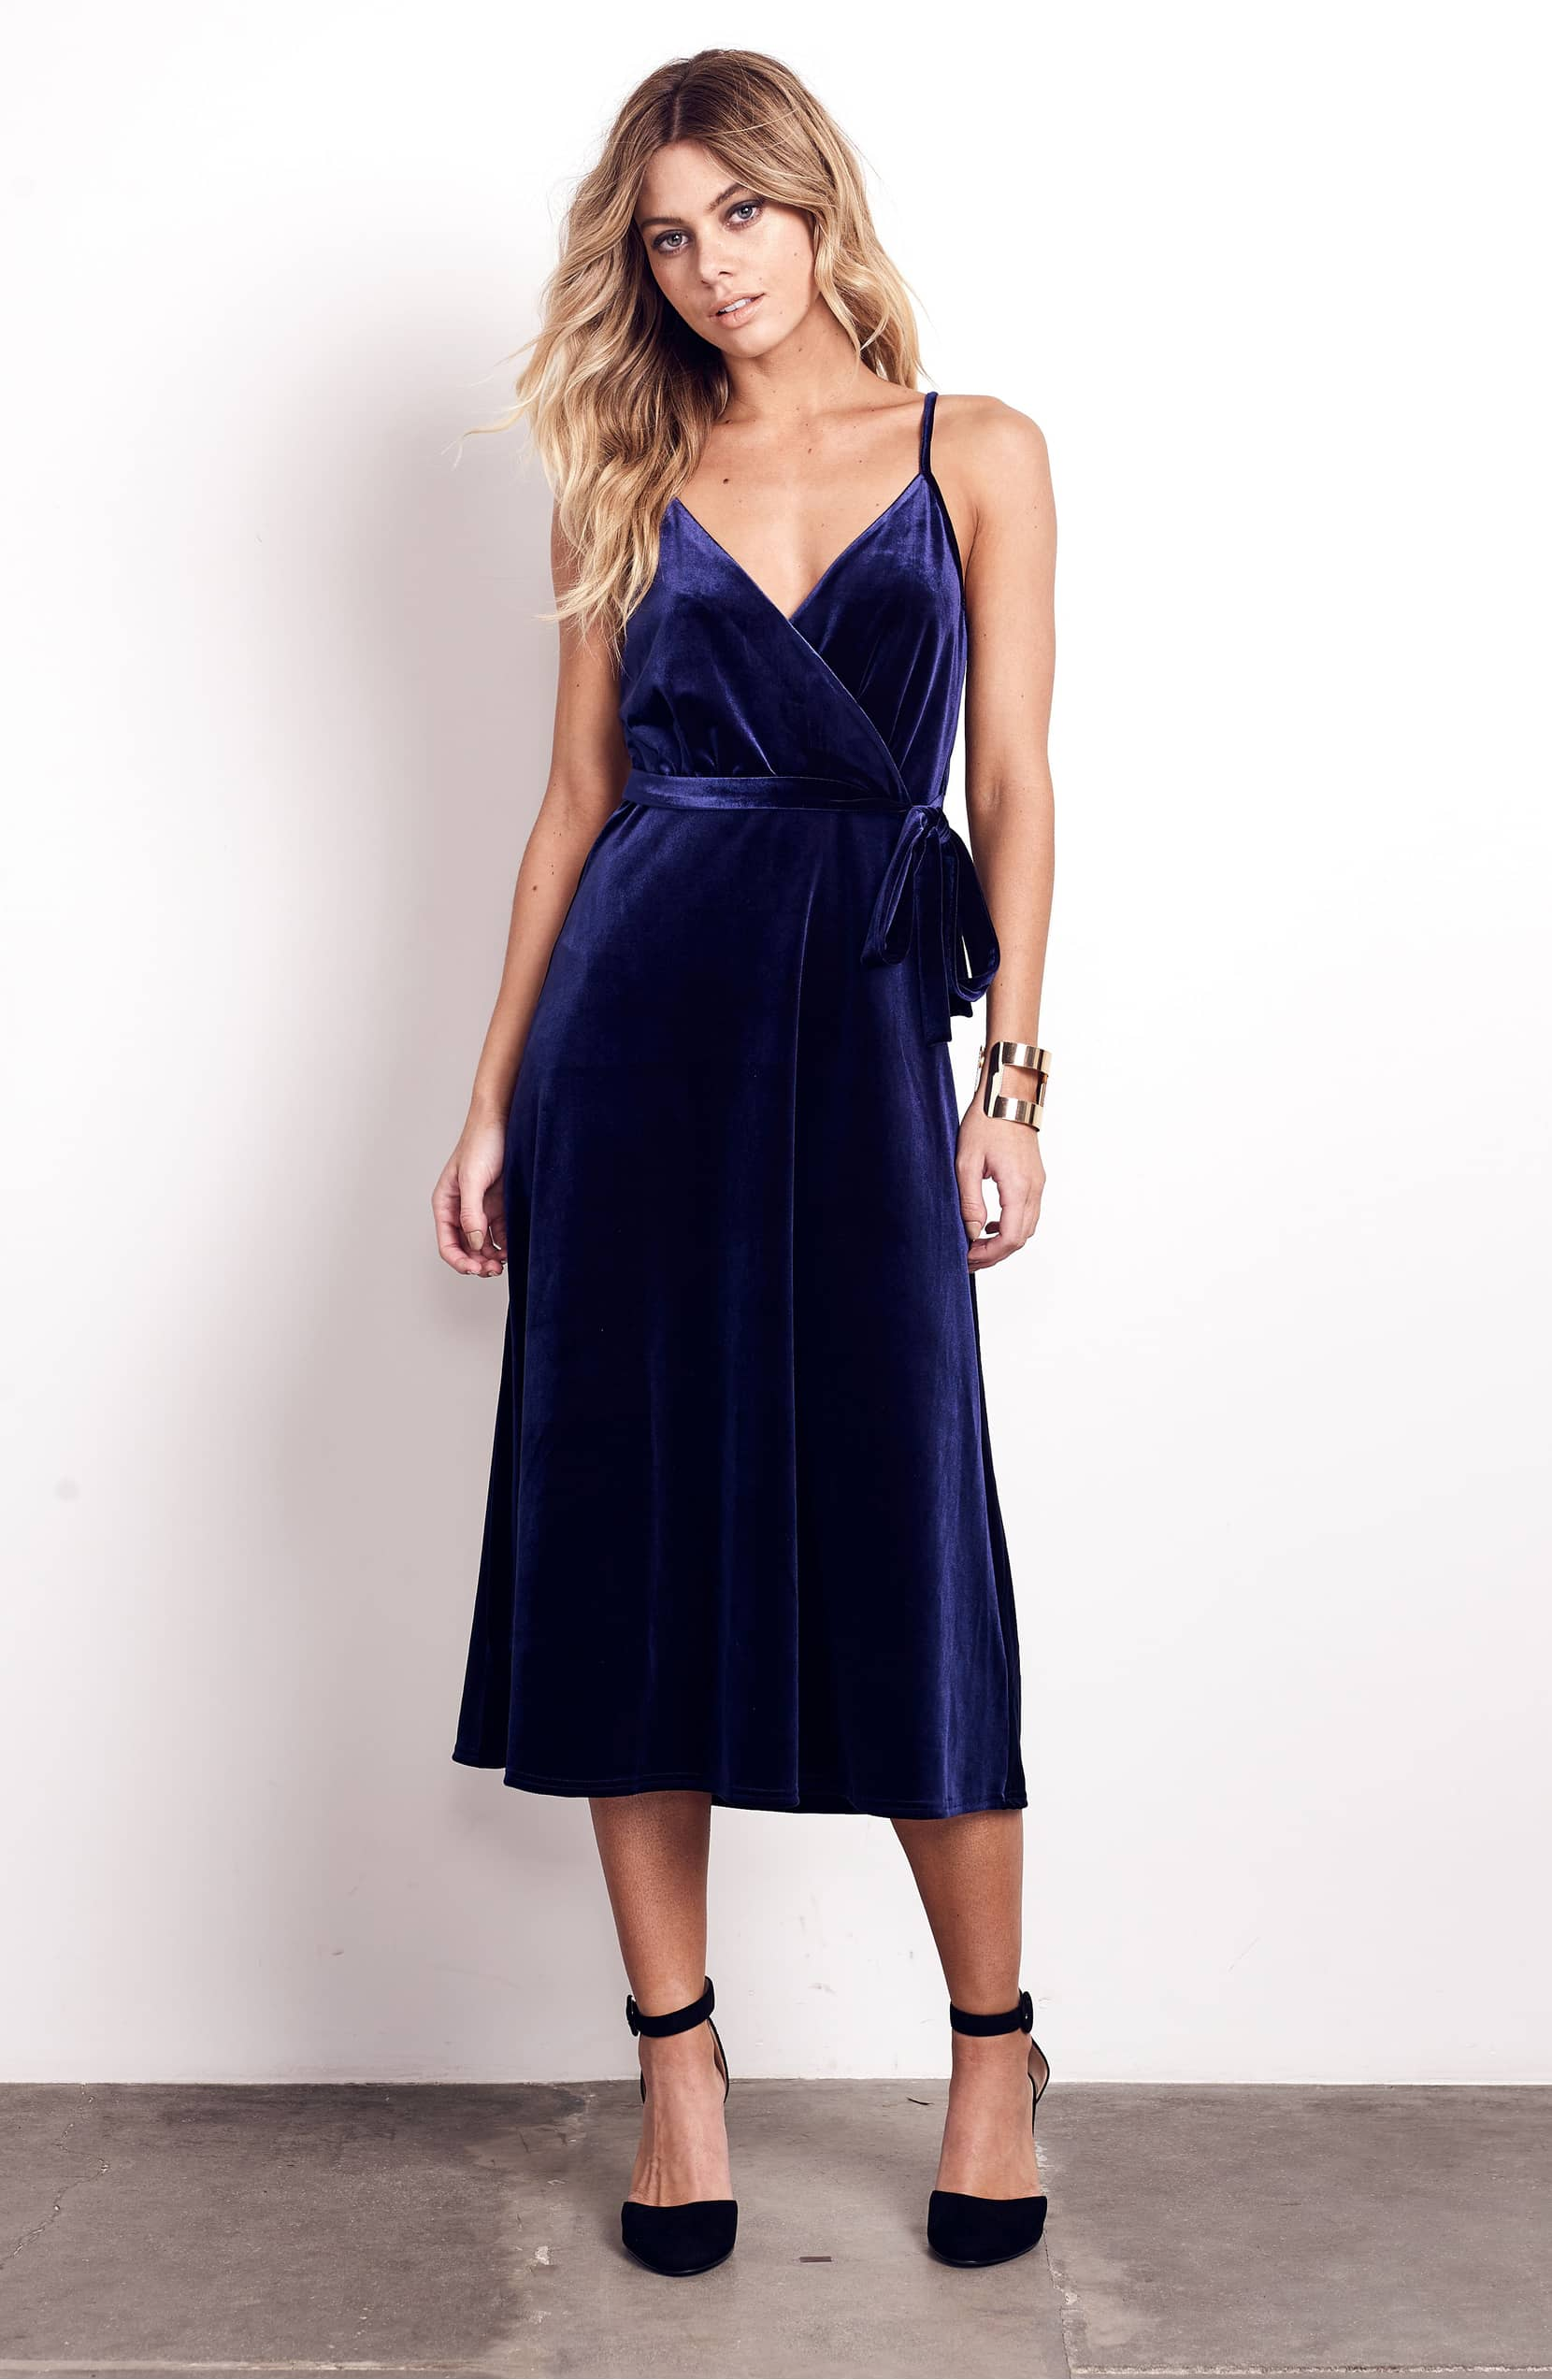 shop this blue velvet dress for fall and winter parties. Black Bedroom Furniture Sets. Home Design Ideas